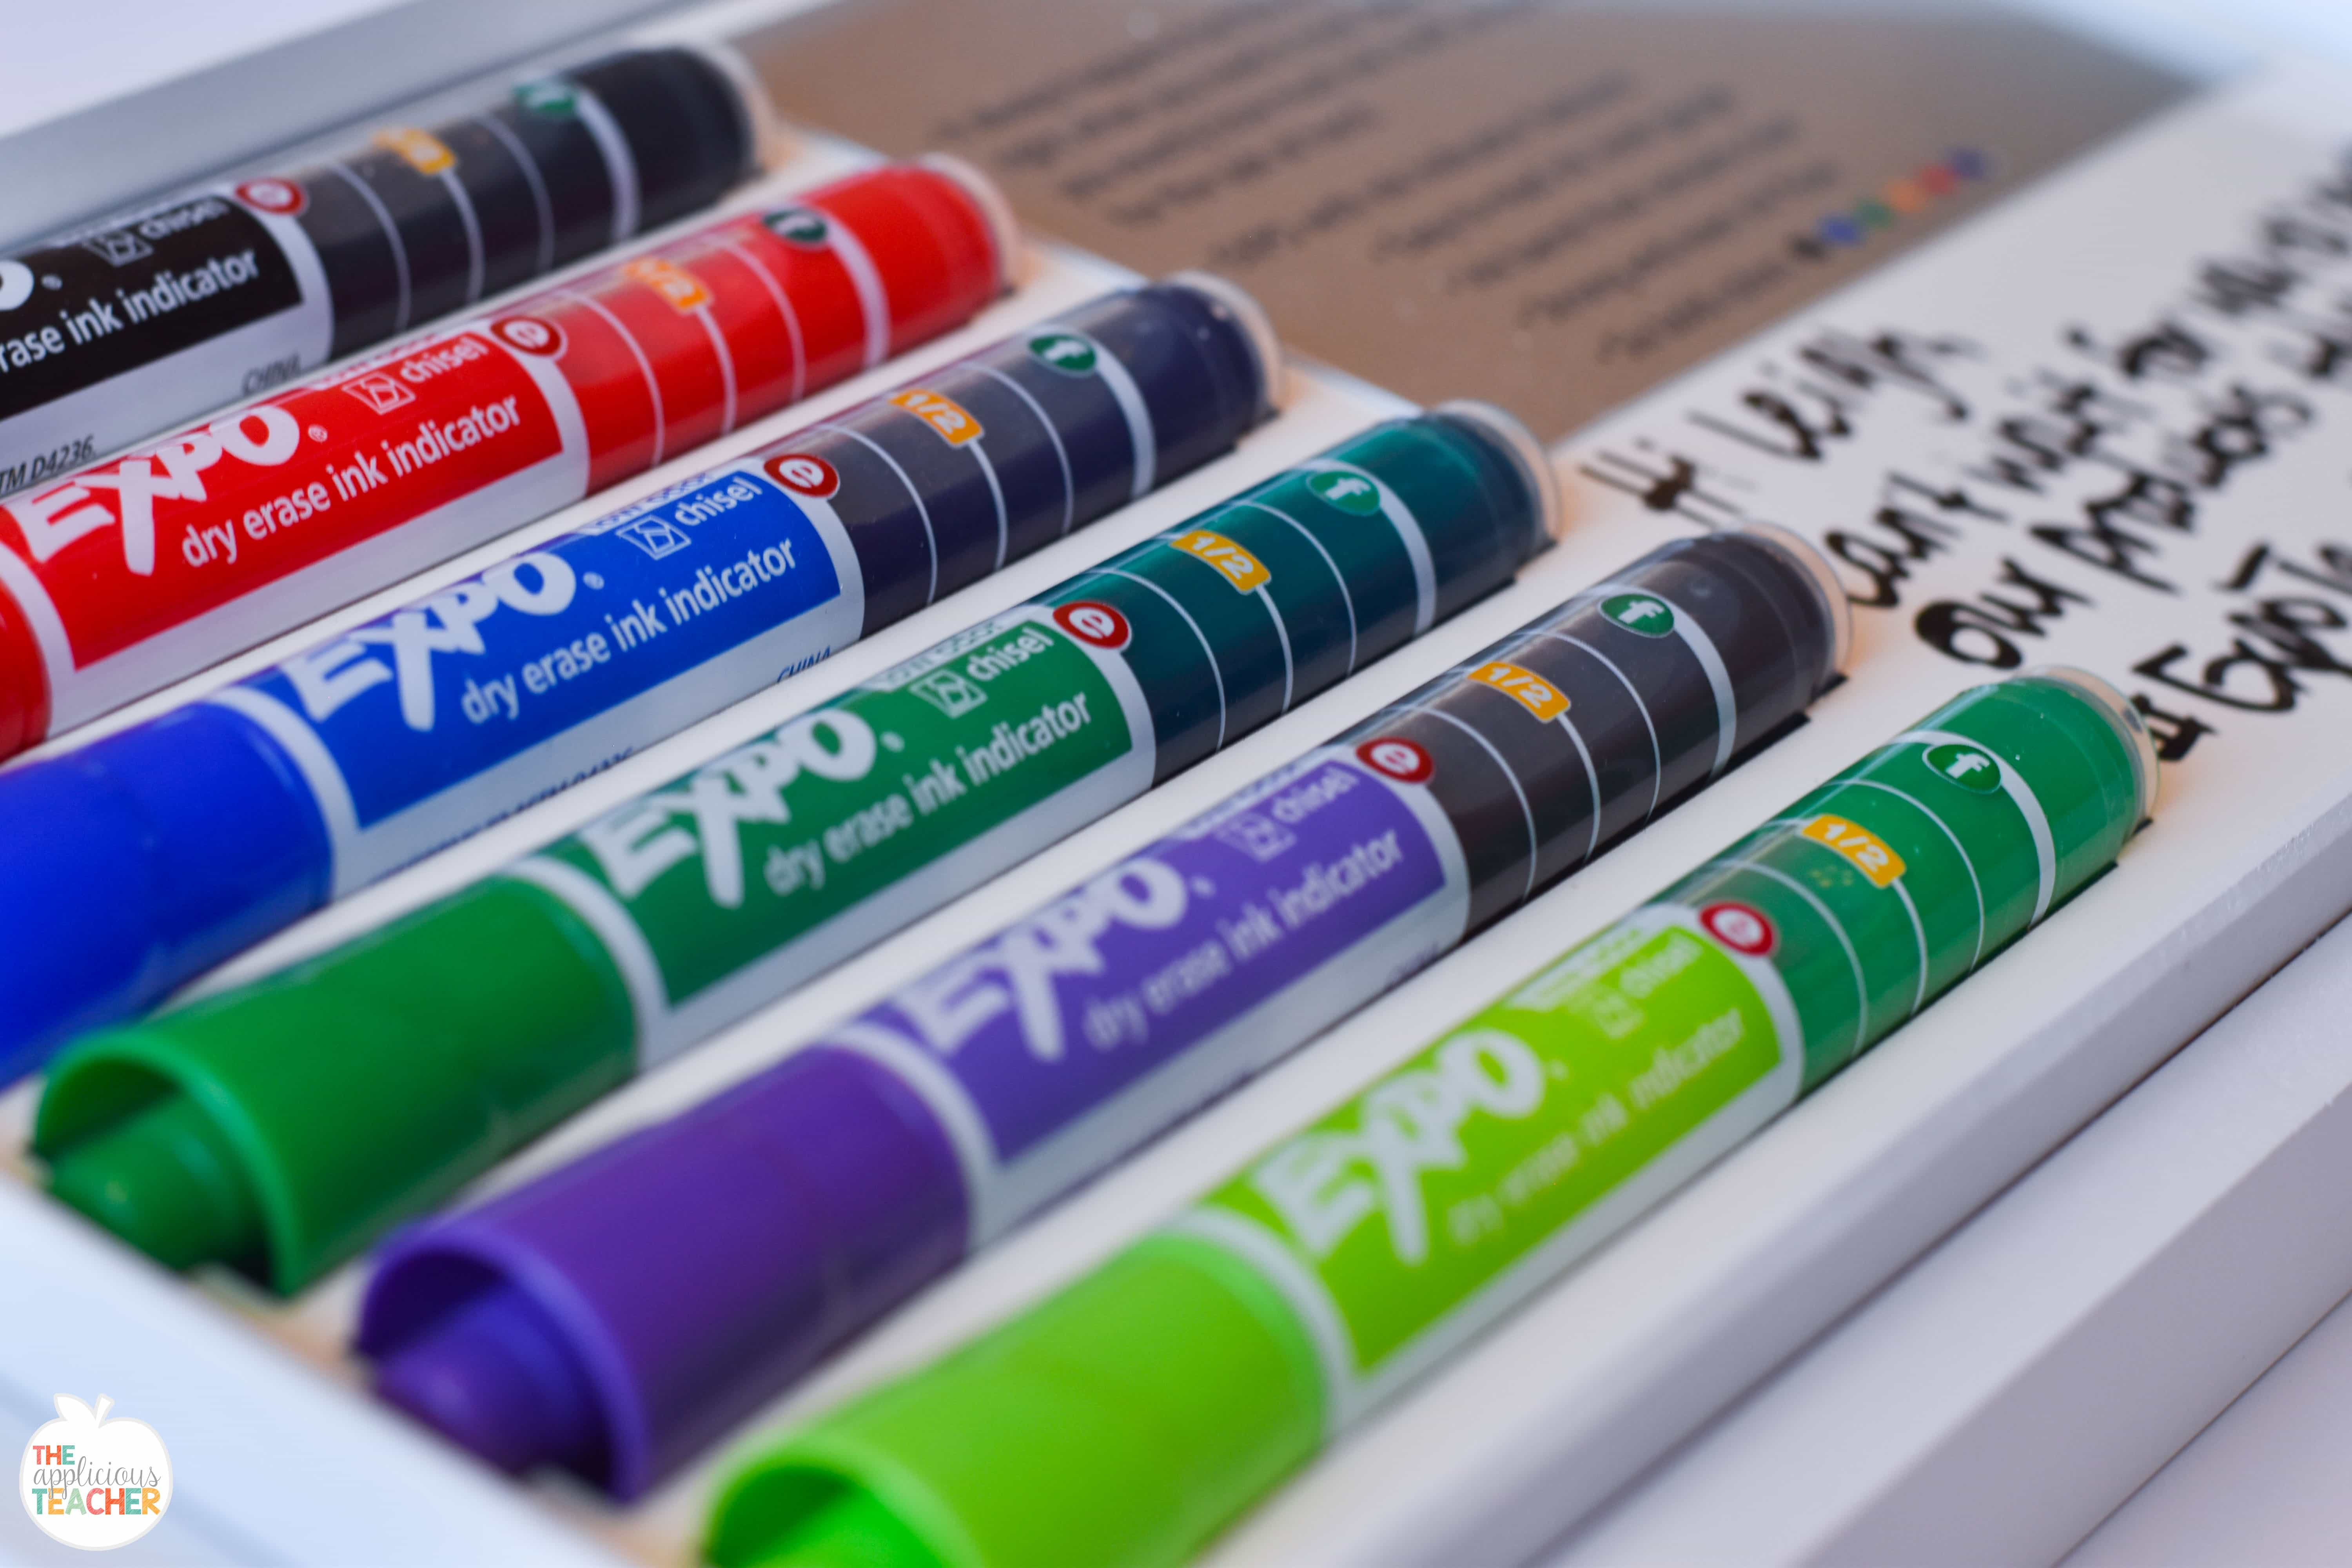 the expo dry erase marker with ink indicator